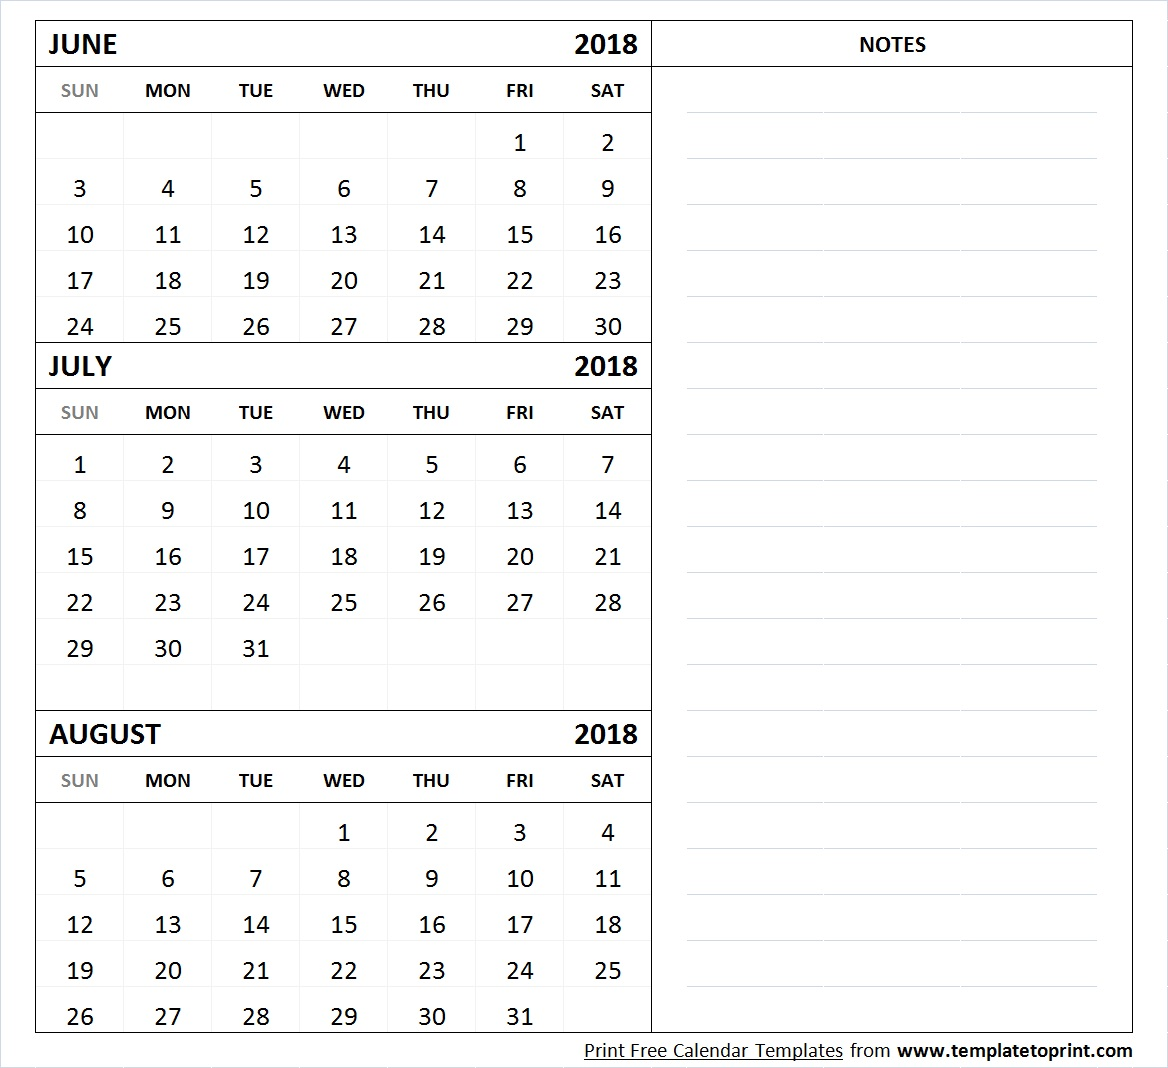 2018 Calendar May June July Template Free Printable 3 Month Bright